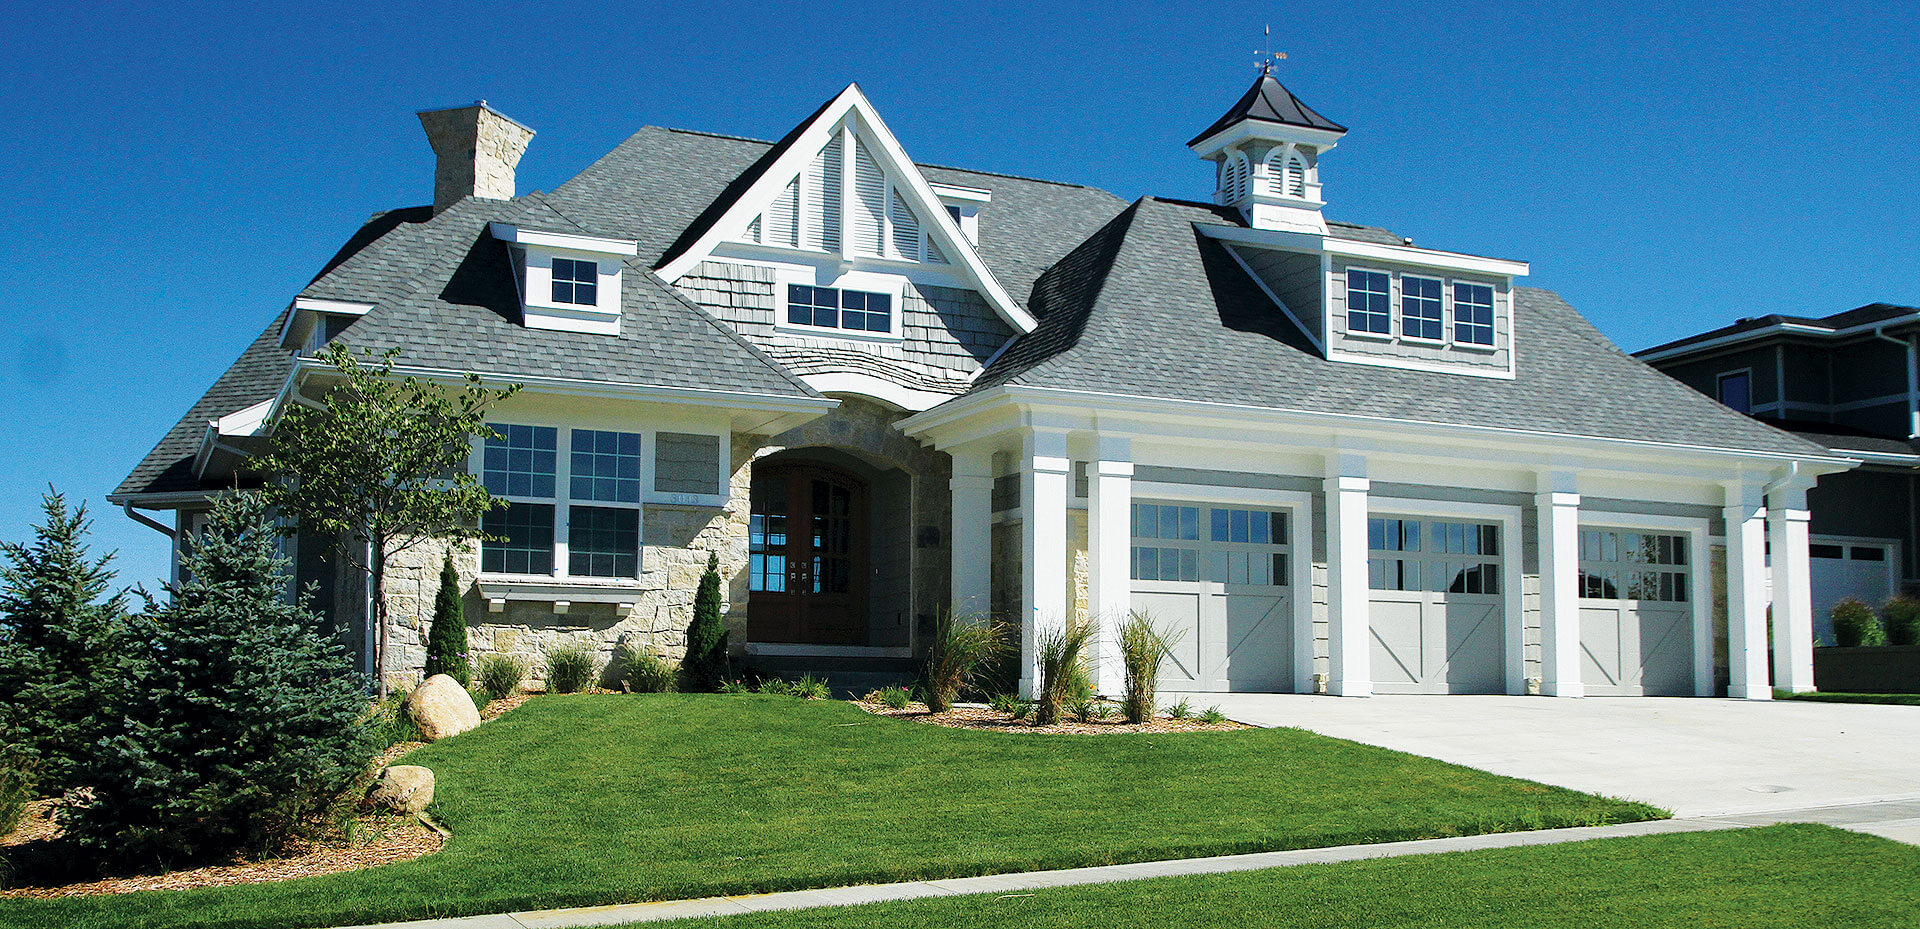 Custom Home Builder in Des Moines, Iowa